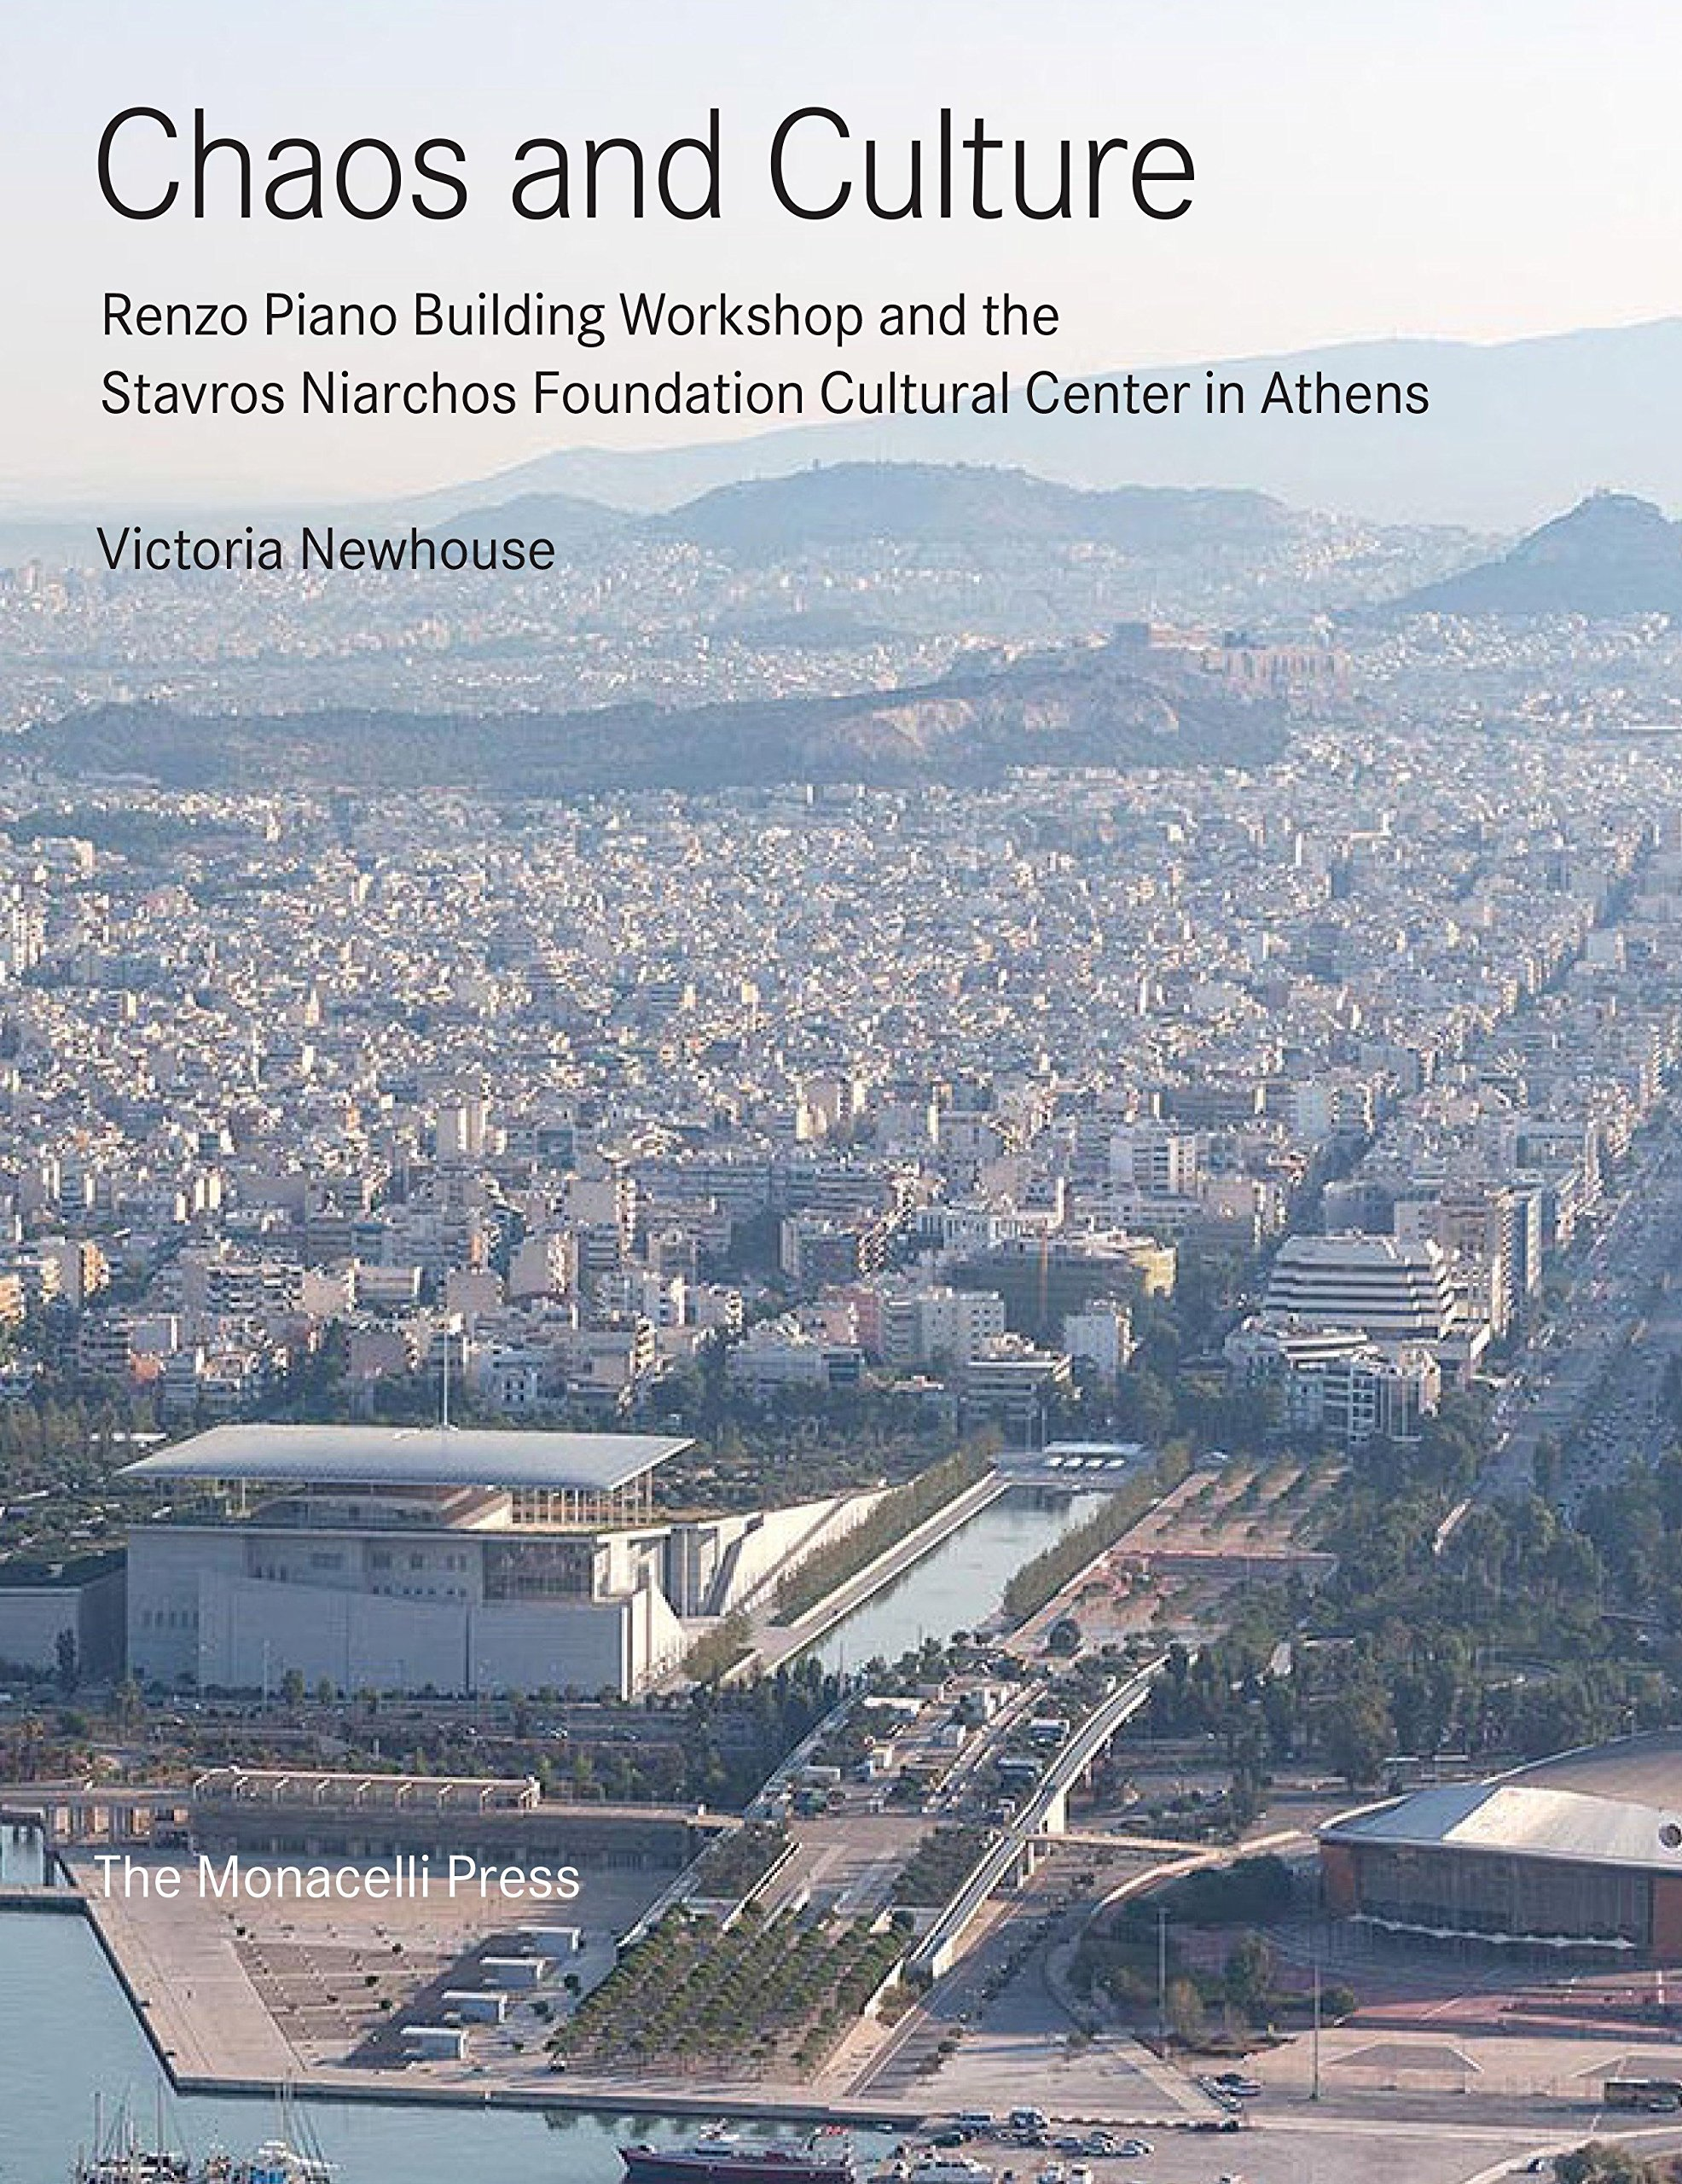 Chaos and Culture: Renzo Piano Building Workshop and the Stavros Niarchos Foundation Cultural Center in Athens pdf